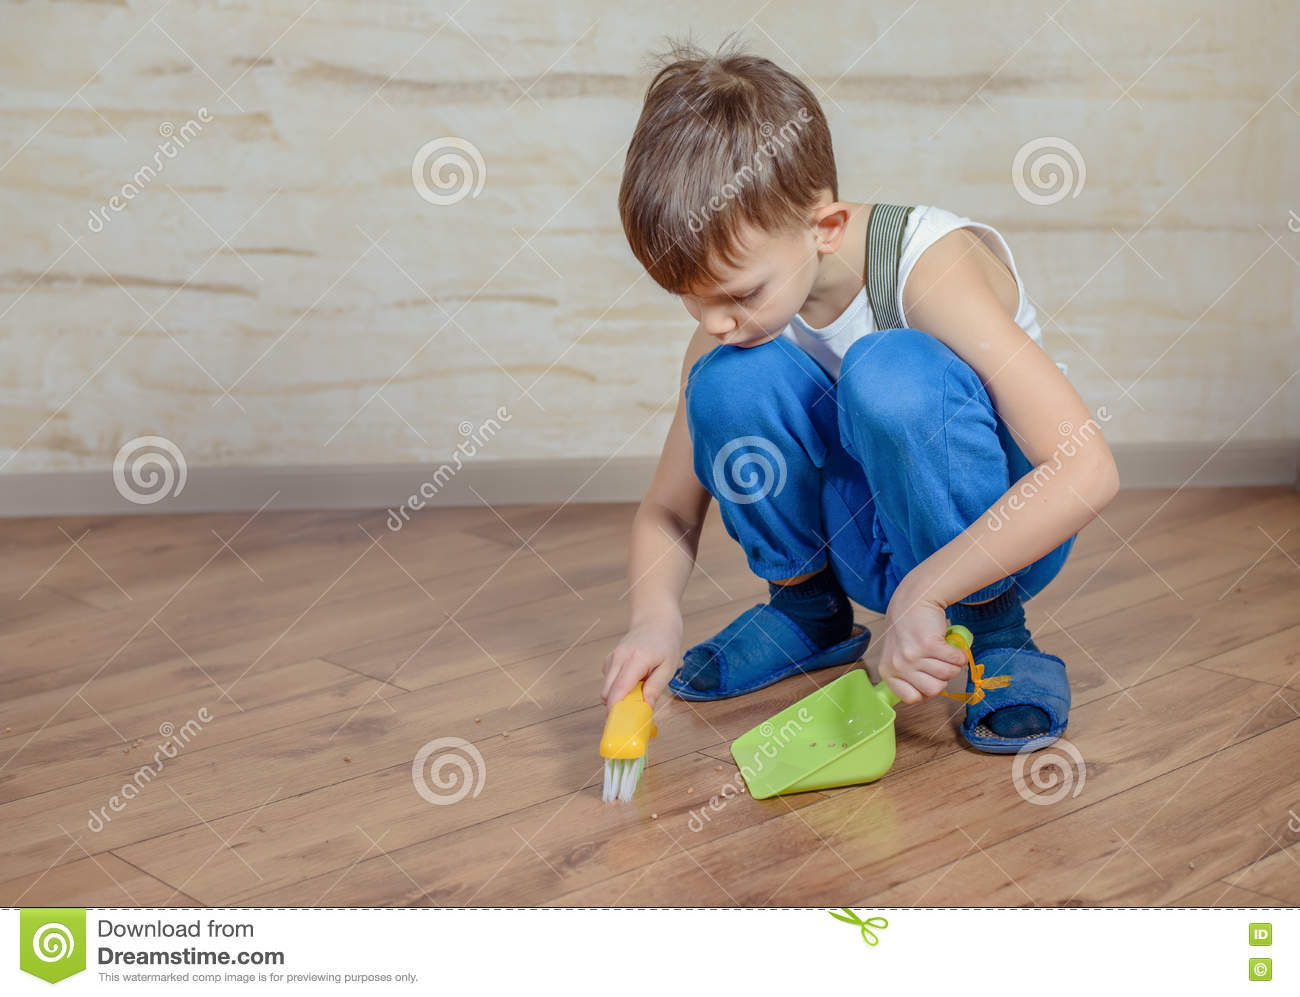 Child Using Toy Broom And Dustpan Stock Photo Image Of